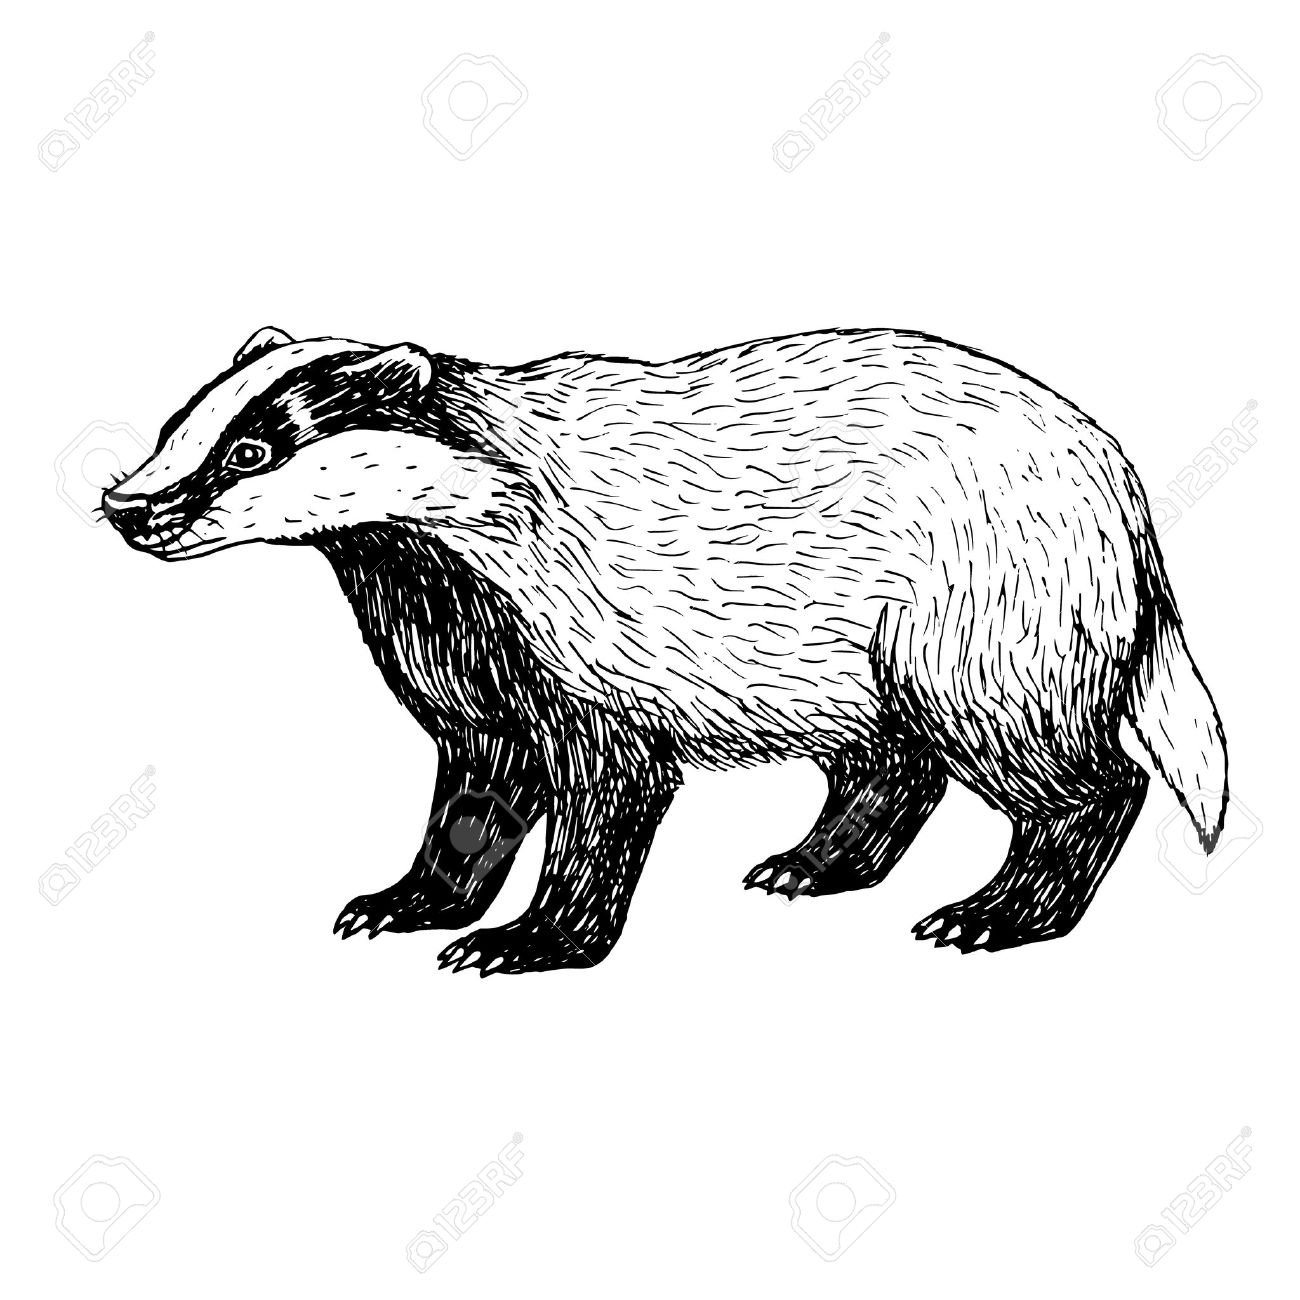 1300x1300 Hand Drawn Badger. Retro Sketch Isolated. Vintage Style. Doodle